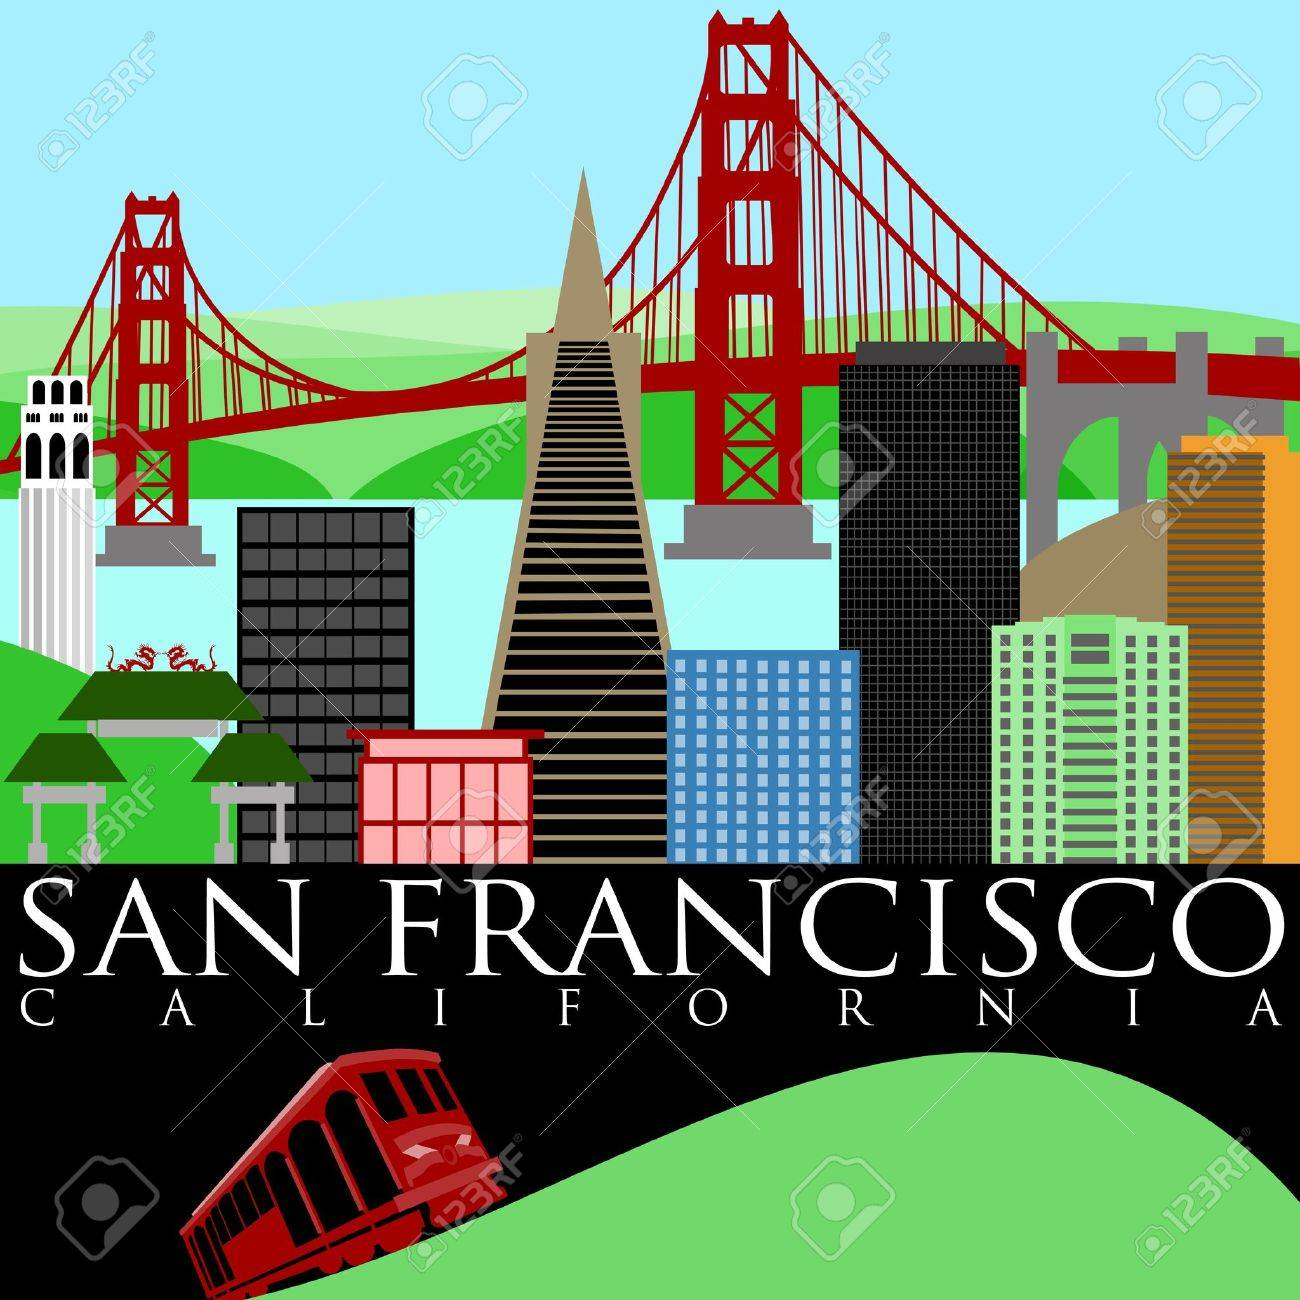 San Francisco California Skyline with Golden Gate Bridge by the Bay Illustration Stock Illustration - 8533337